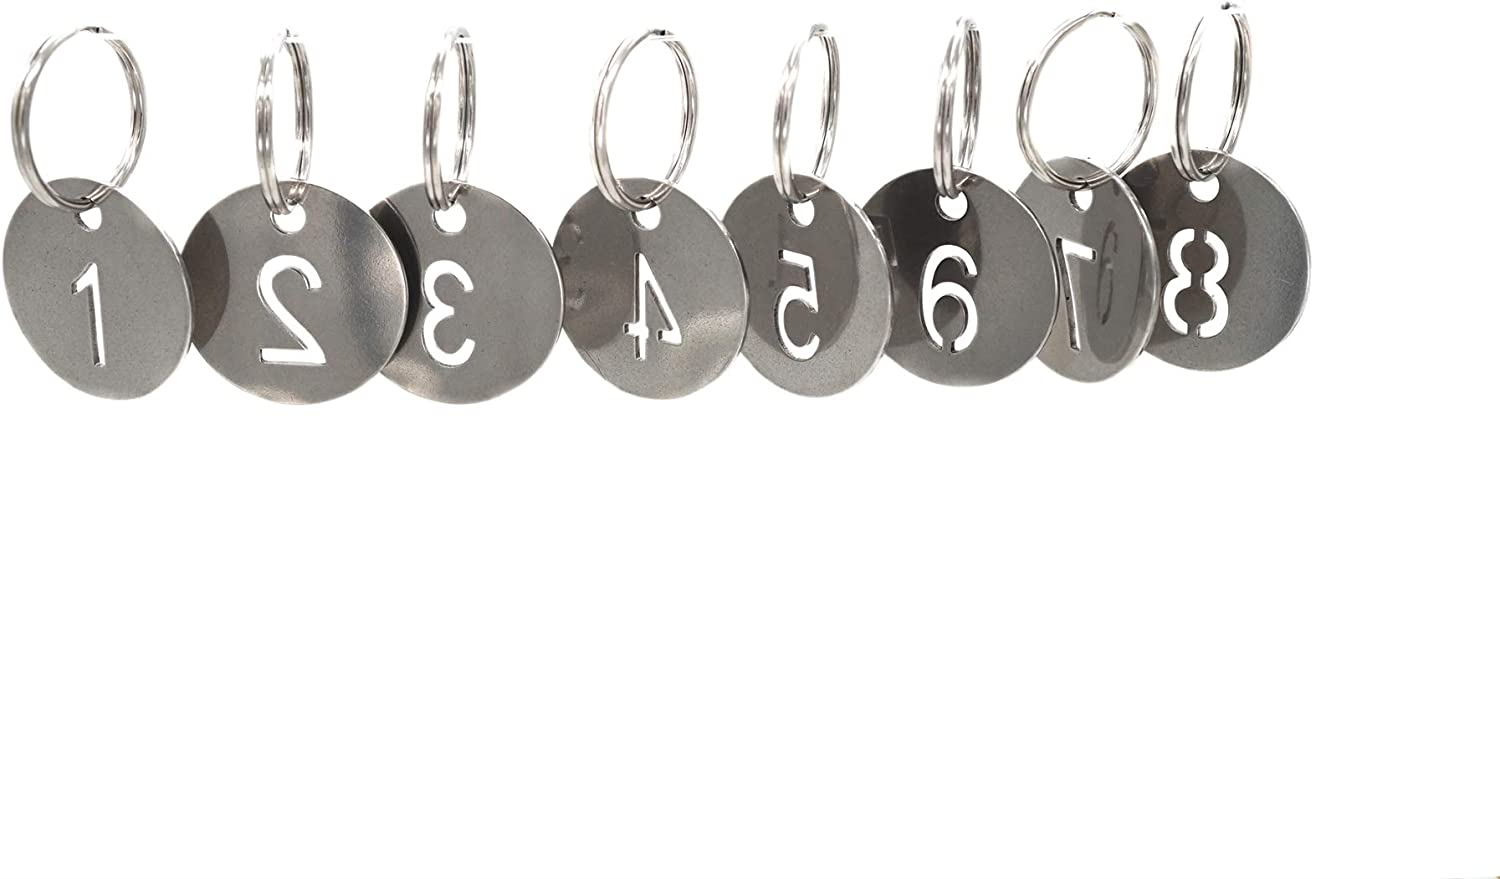 304 Stainless Steel Key Tags with Ring 20 pcs, 25mm Hollowed Number ID Tags Key Chain, Numbered Key Rings - 1 to 20